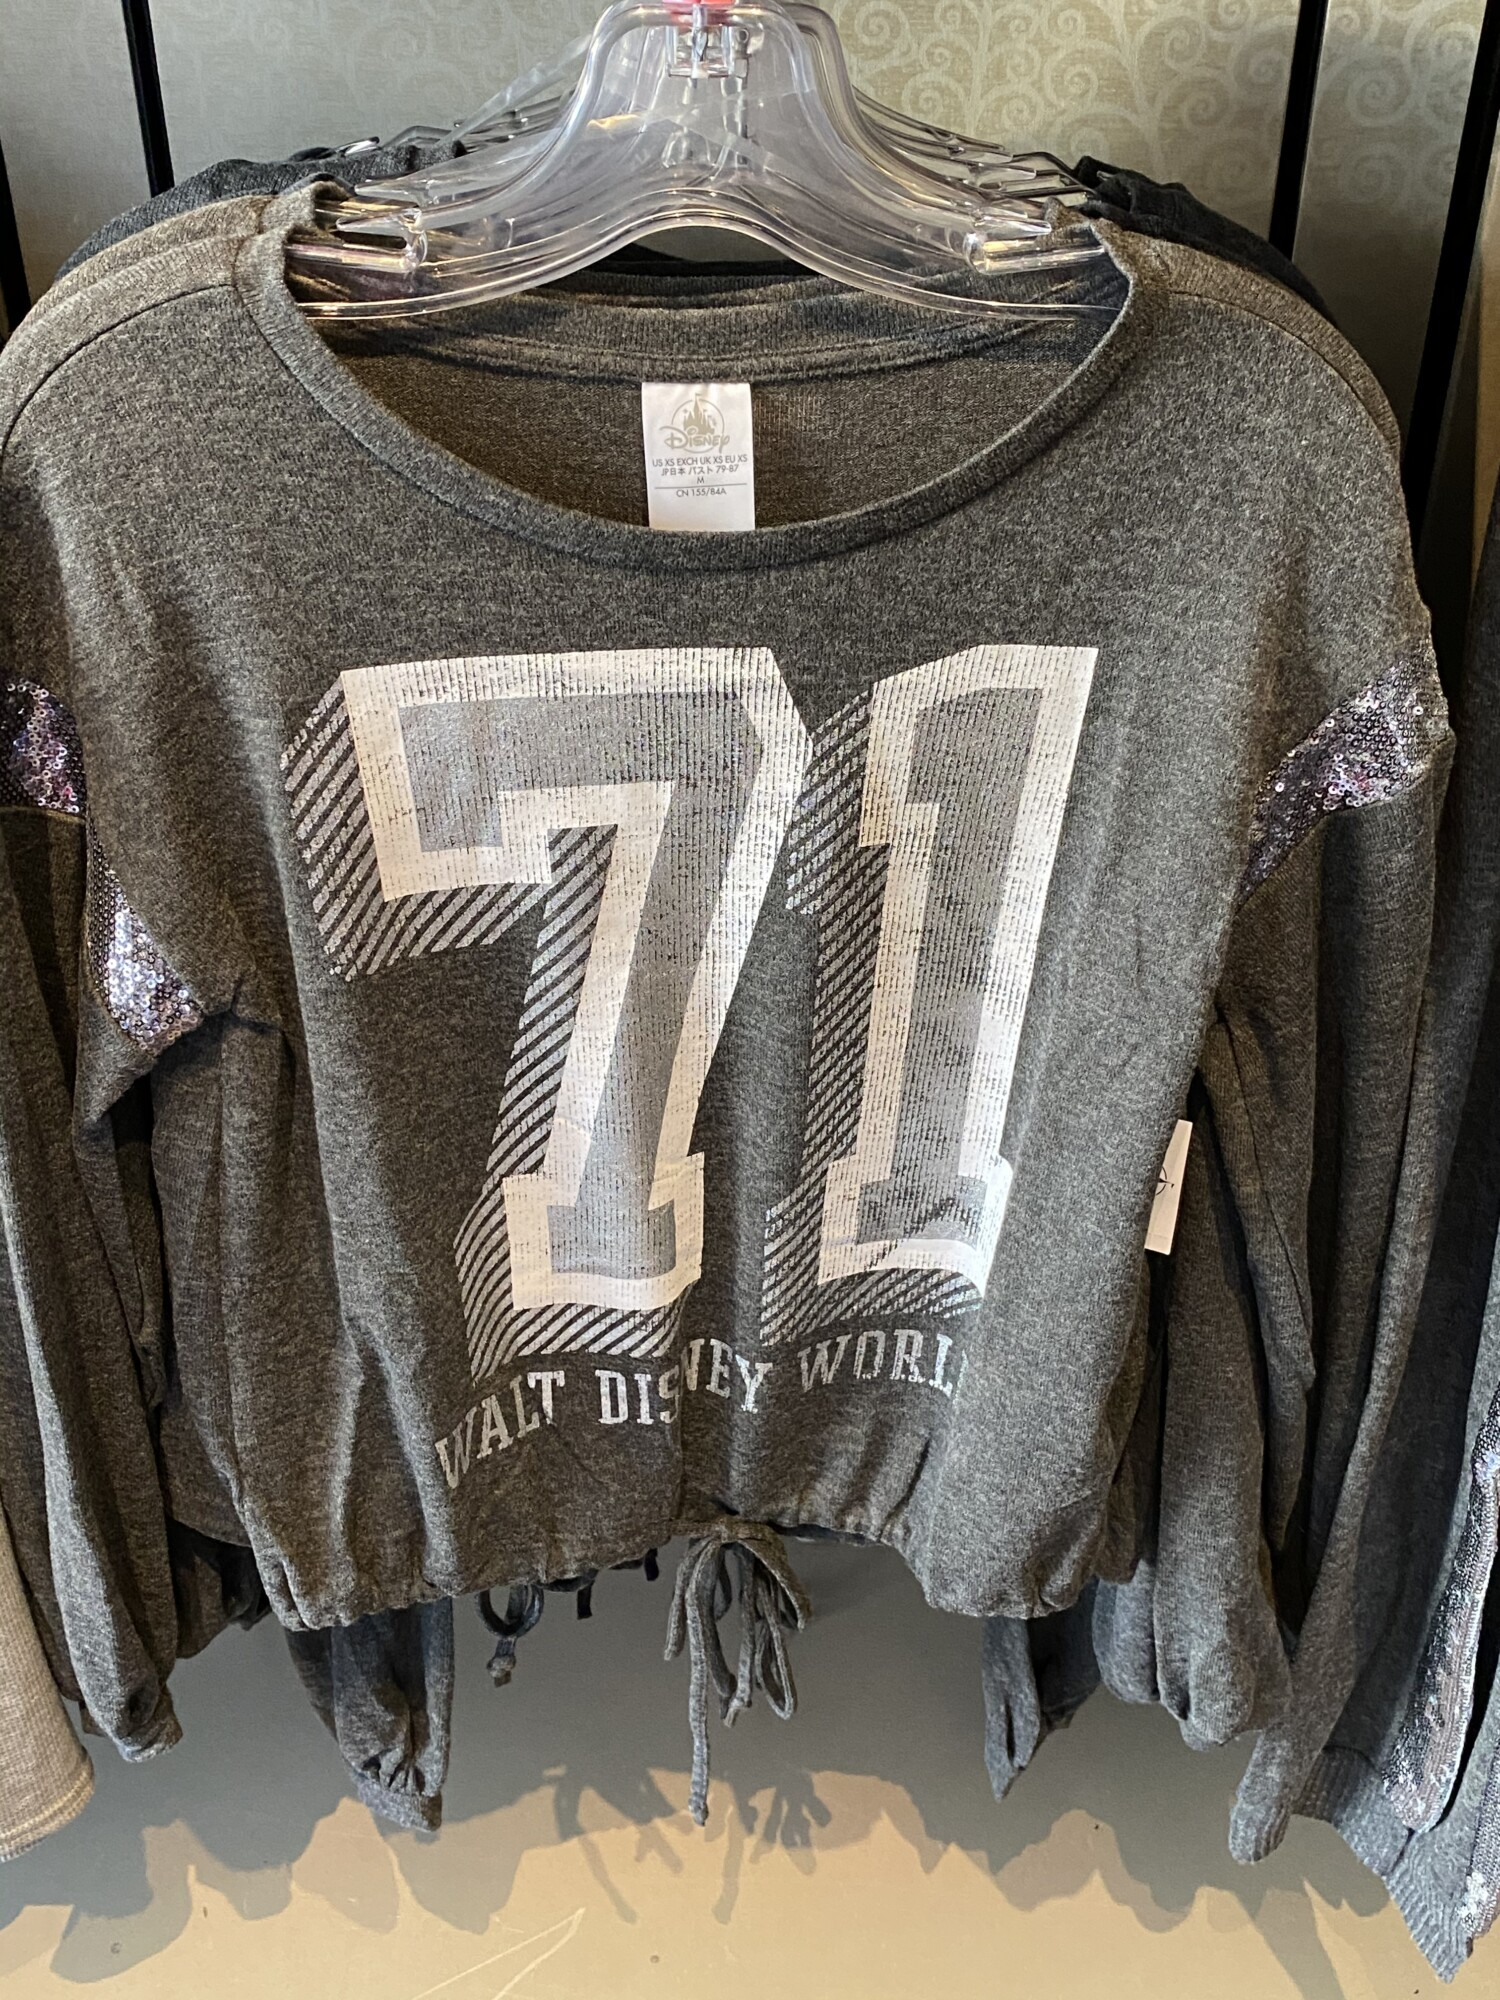 New Sparkly Silver Apparel at Hollywood Studios! 9